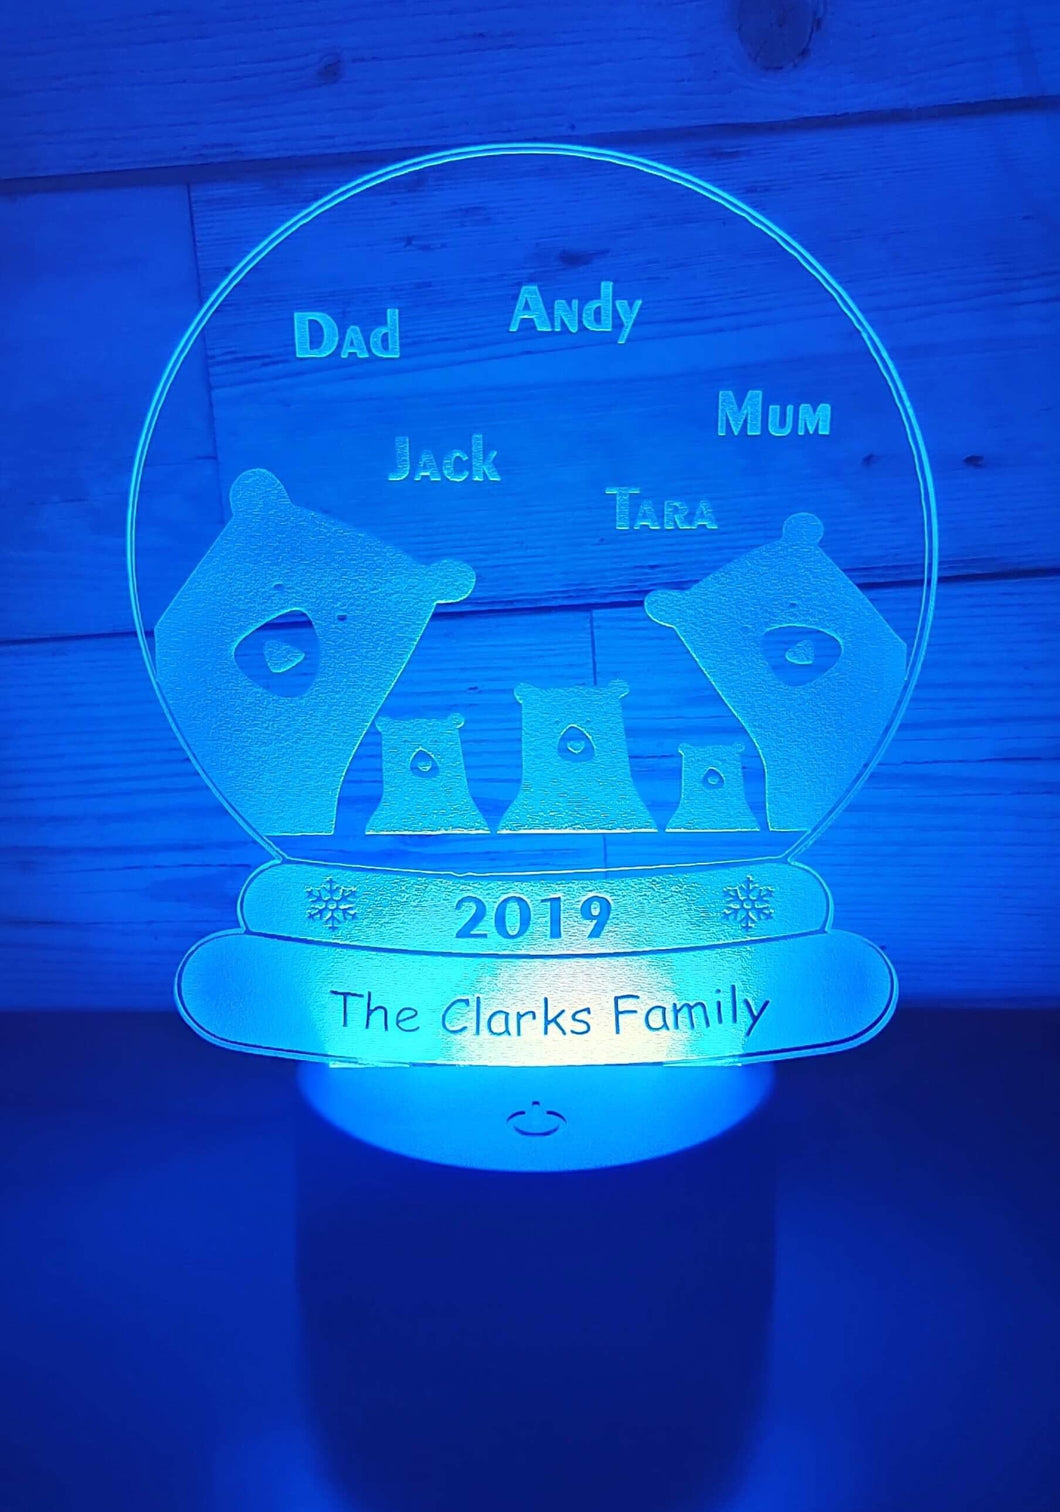 Bear family snow globe LED light up display- 9 colour options with remote - Laser LLama Designs Ltd